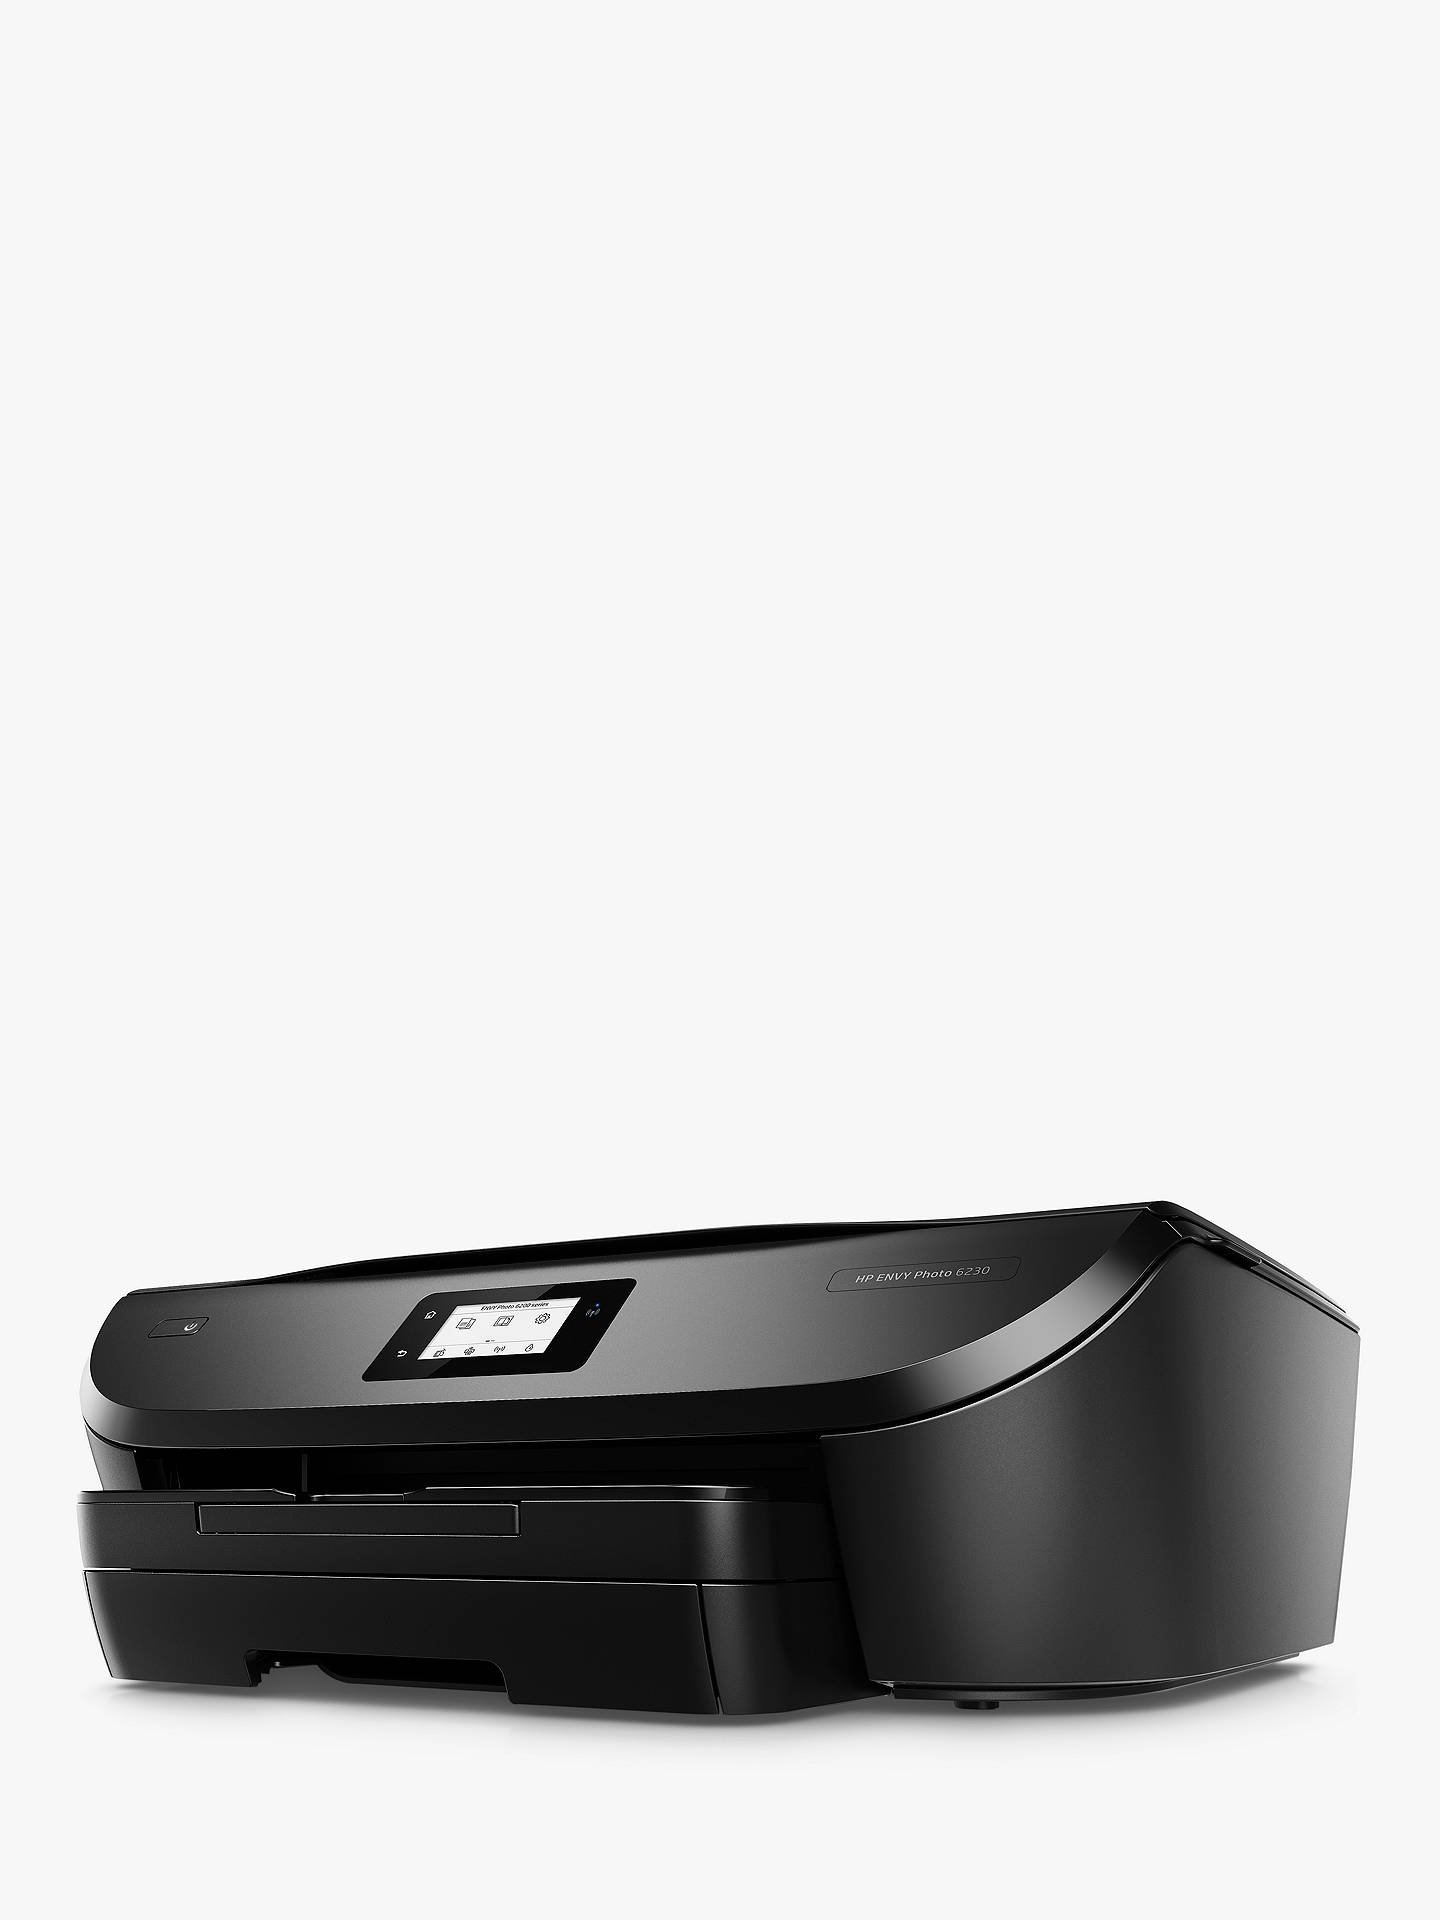 HP ENVY Photo 6230 All-in-One Wireless Printer with Touch Screen, HP  Instant Ink Compatible with 4 Months Trial